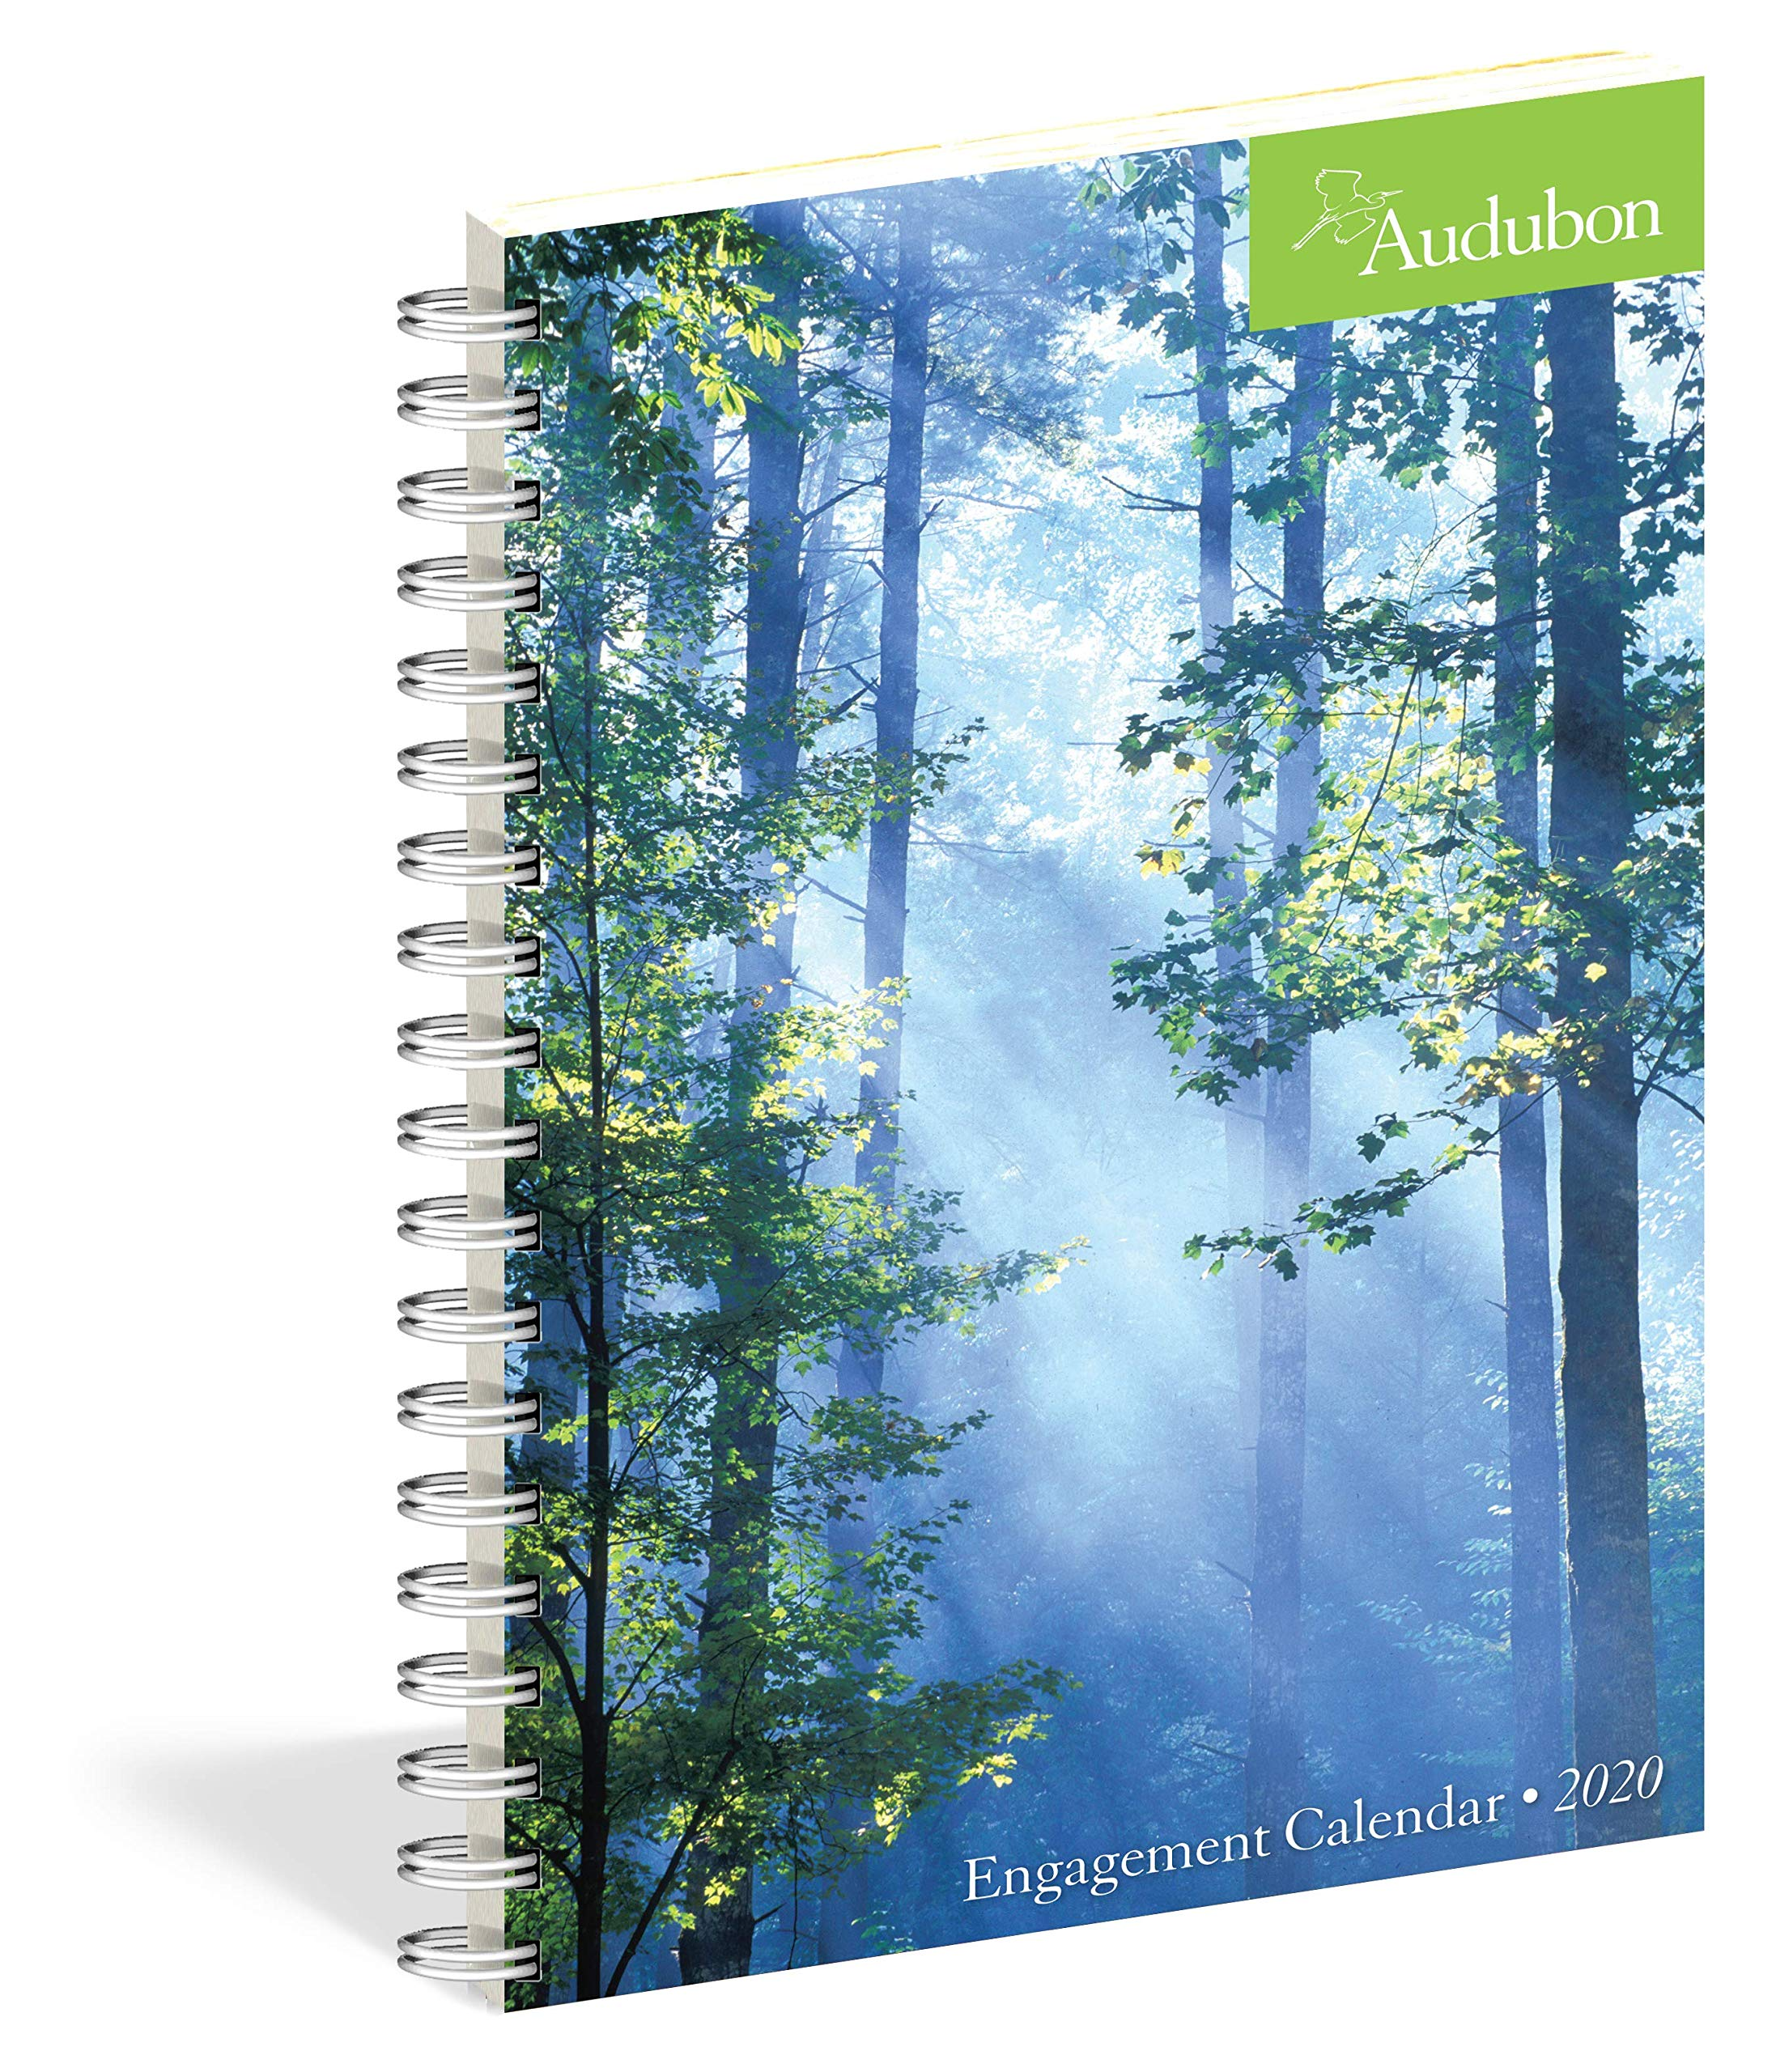 Amazon.com: Audubon Engagement Calendar 2020 (9781523506170 ...